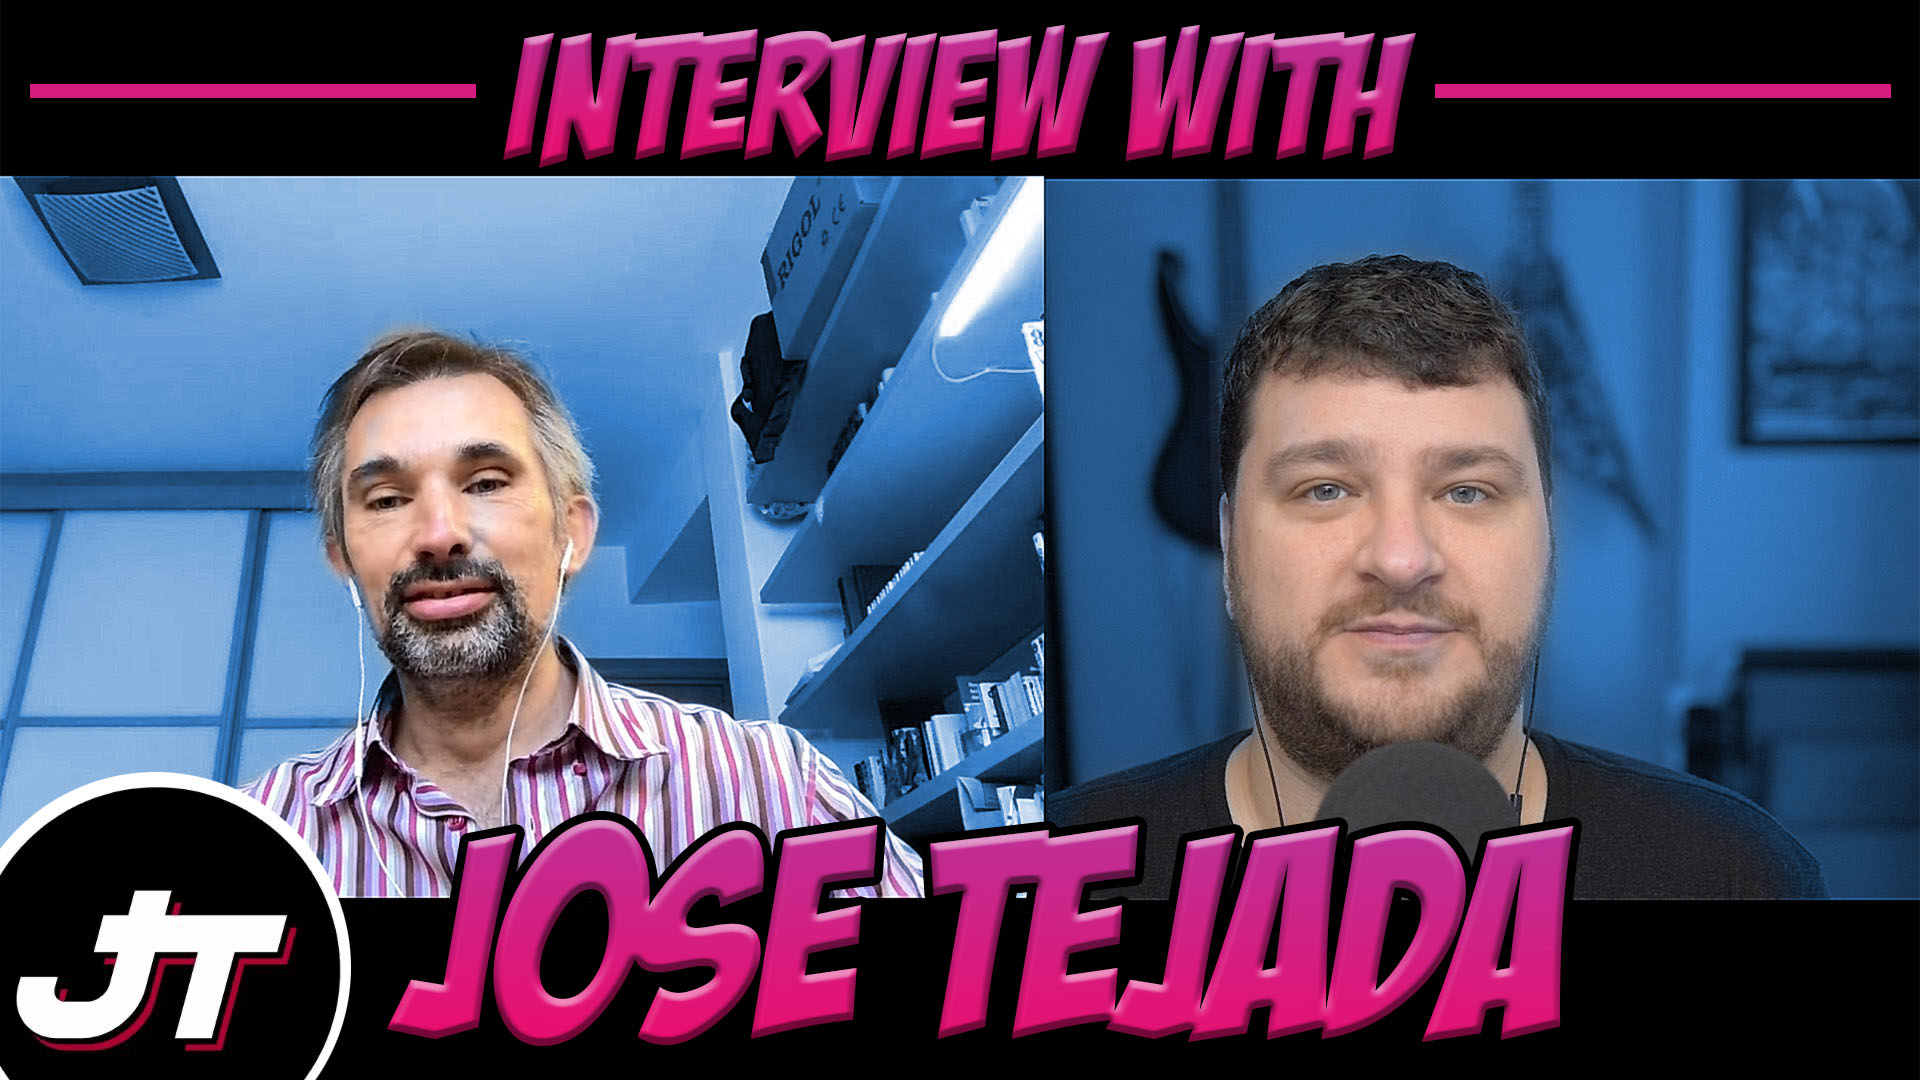 Interview with Jose Tejada aka Jotego